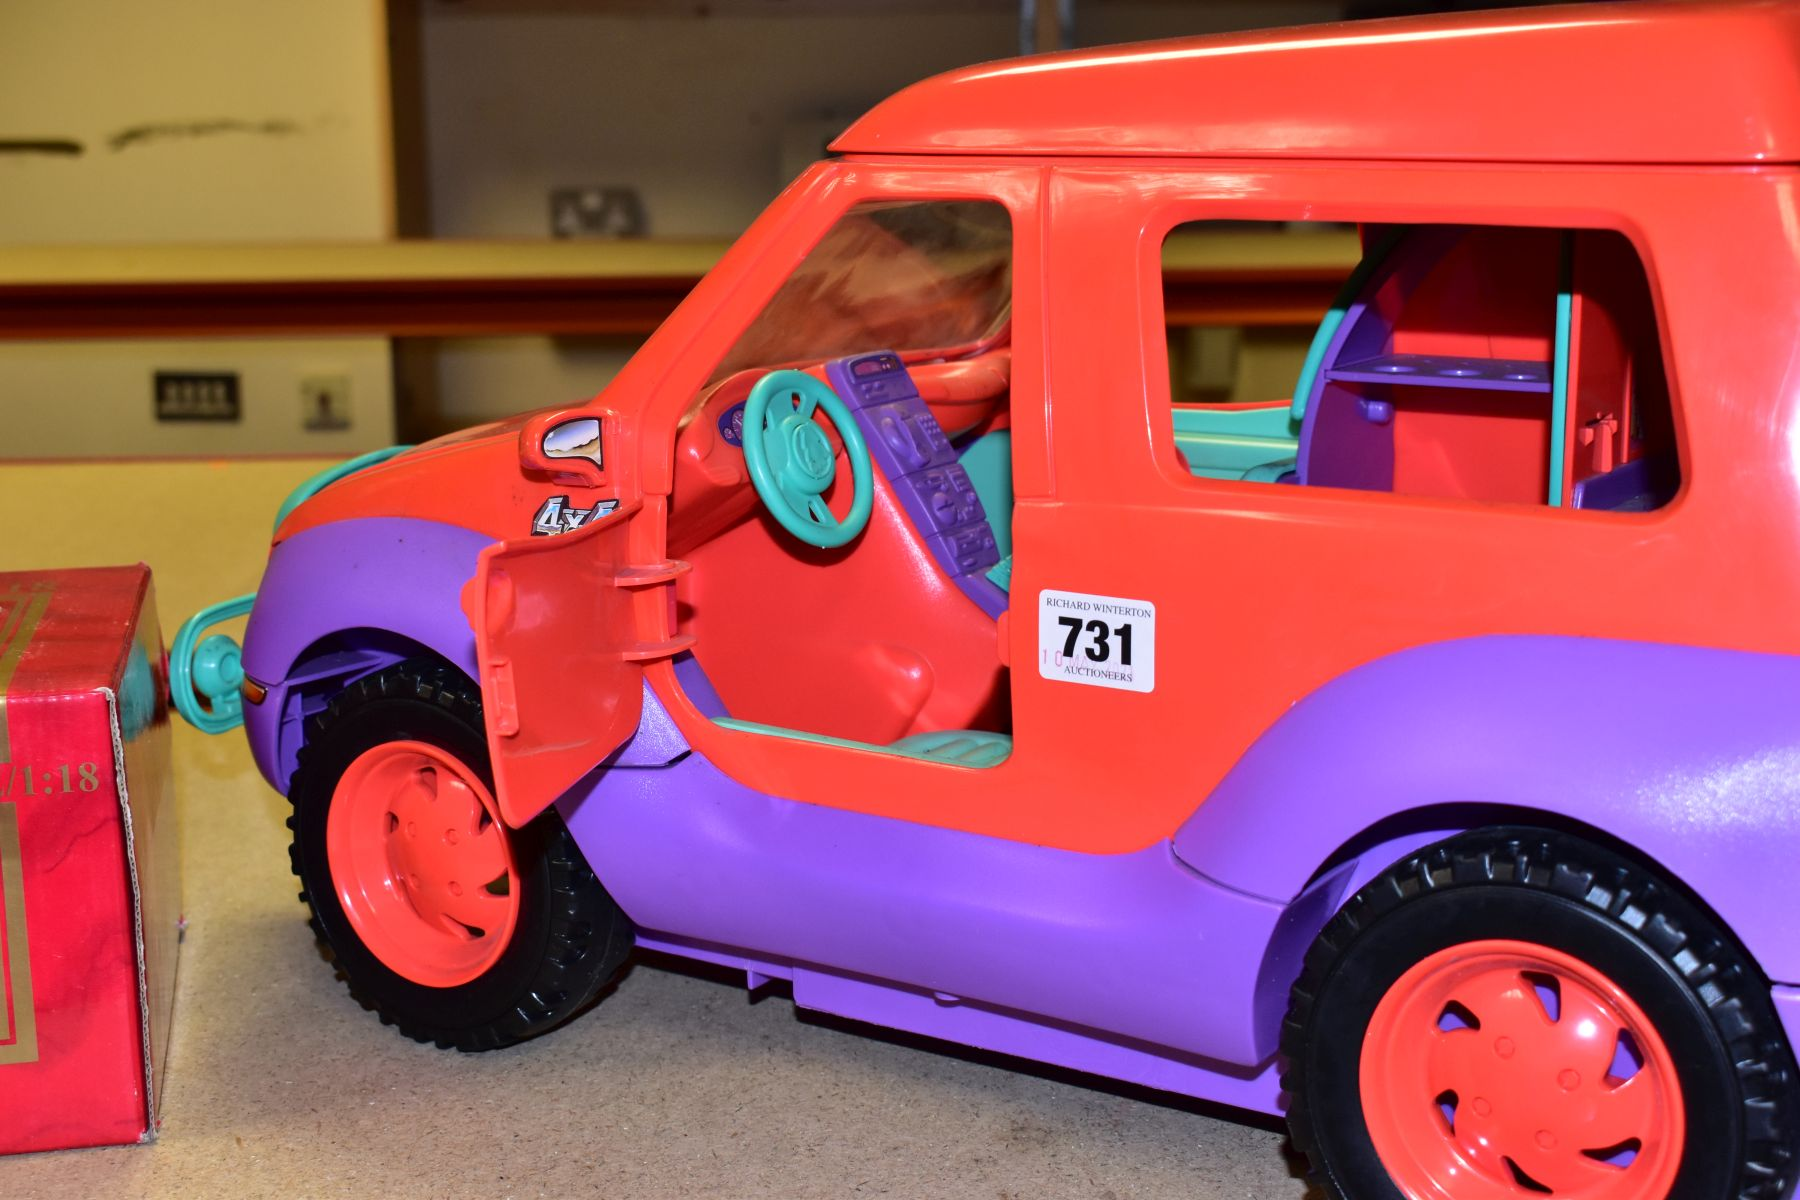 AN UNBOXED SINDY - SPACE 4X4 CAMPER VAN/HOLIDAY HOME, missing some accessories but otherwise appears - Image 4 of 5